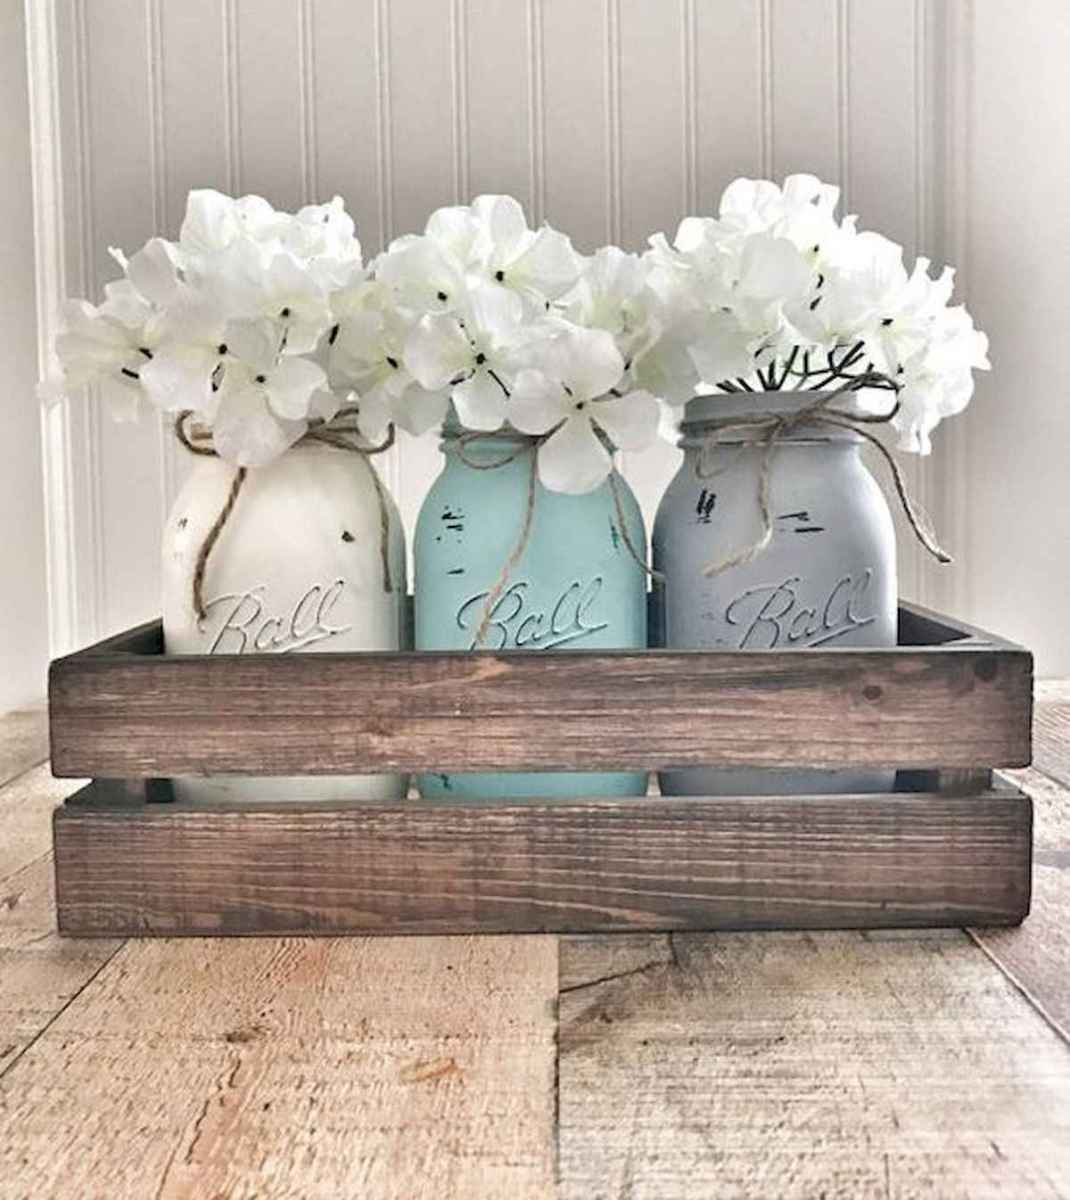 30 Rustic Decorations Ideas for Spring (31)